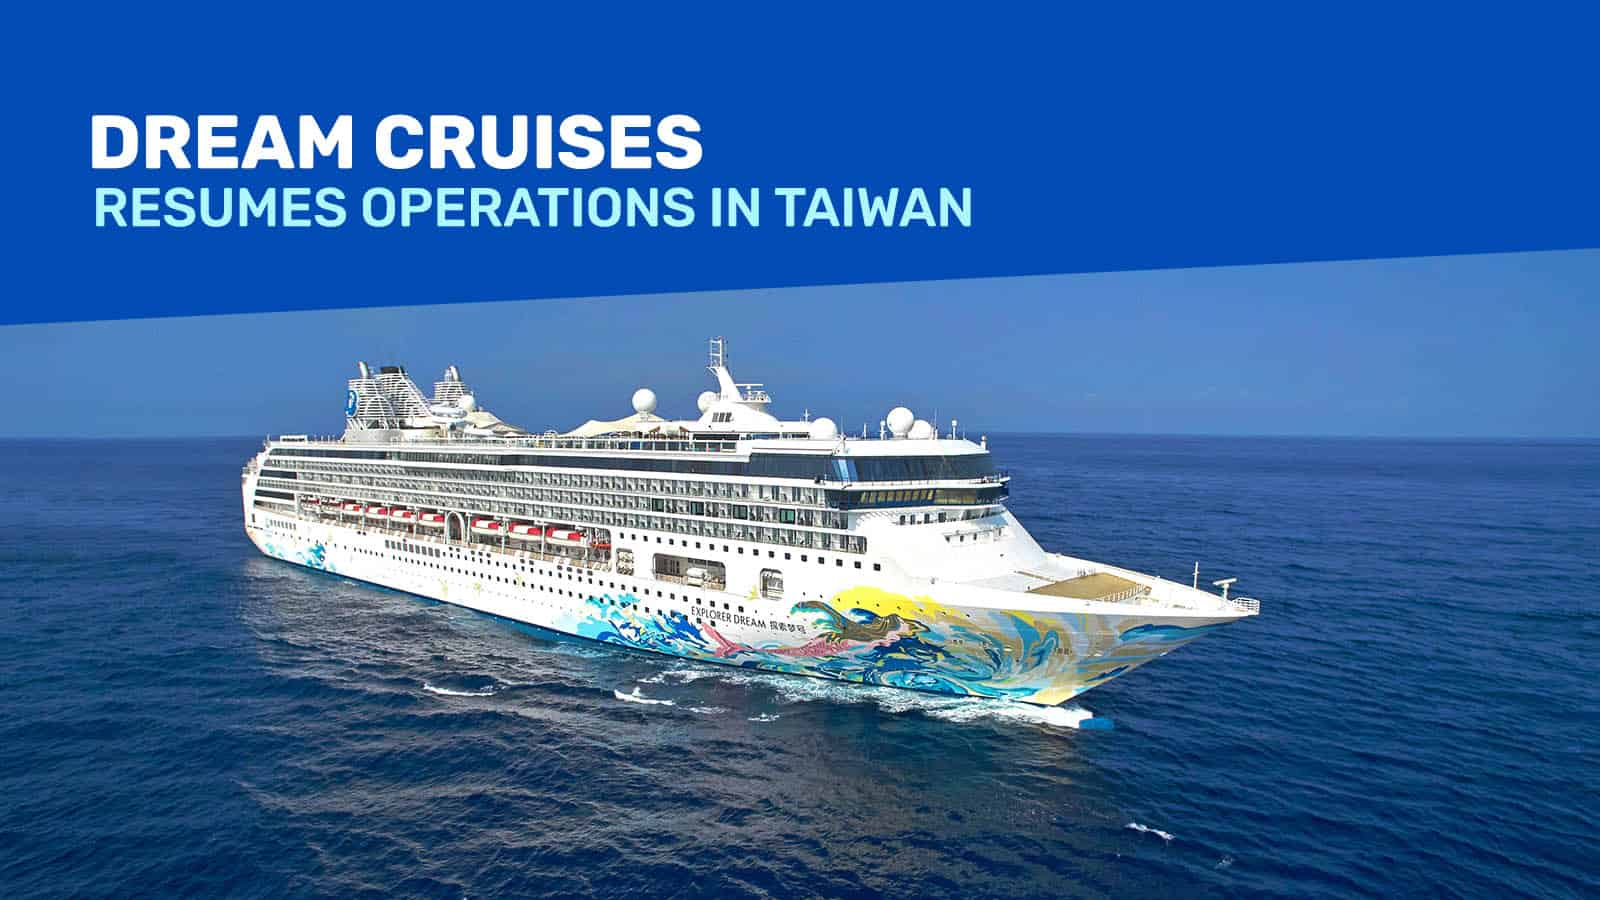 DREAM CRUISES to Resume Operations in Taiwan